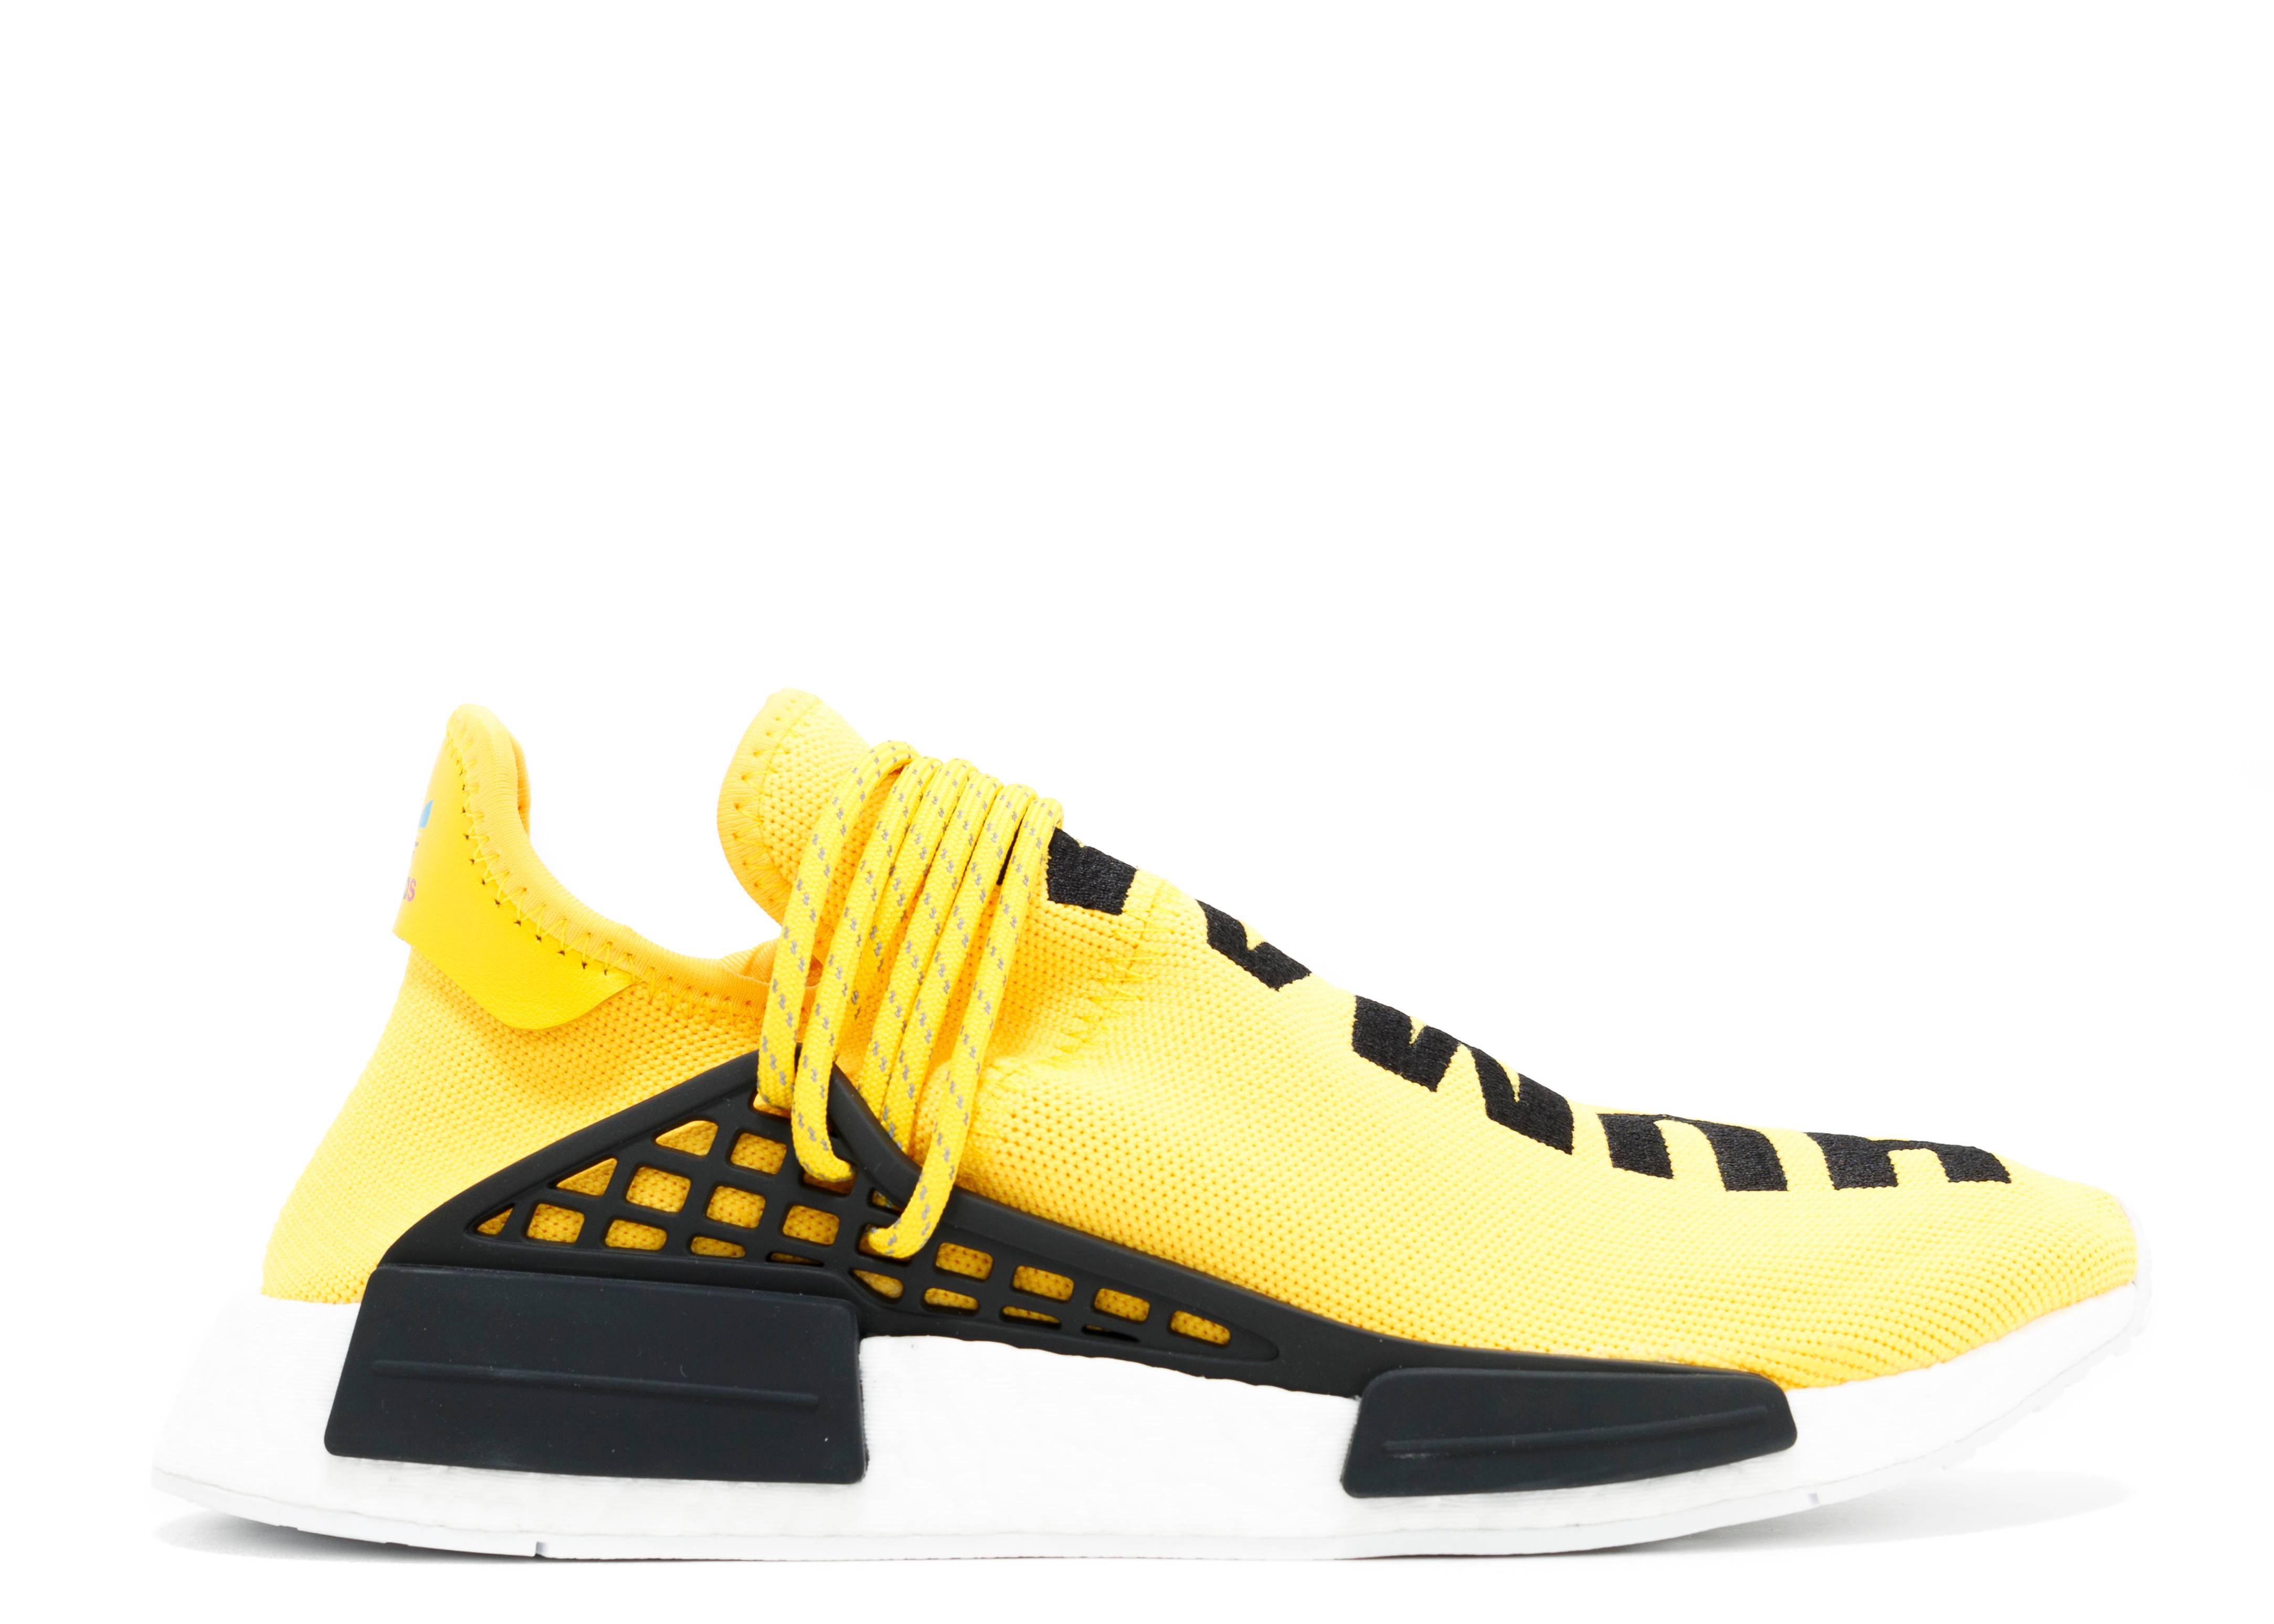 max b x pharrell human race nmd (review/on feet)